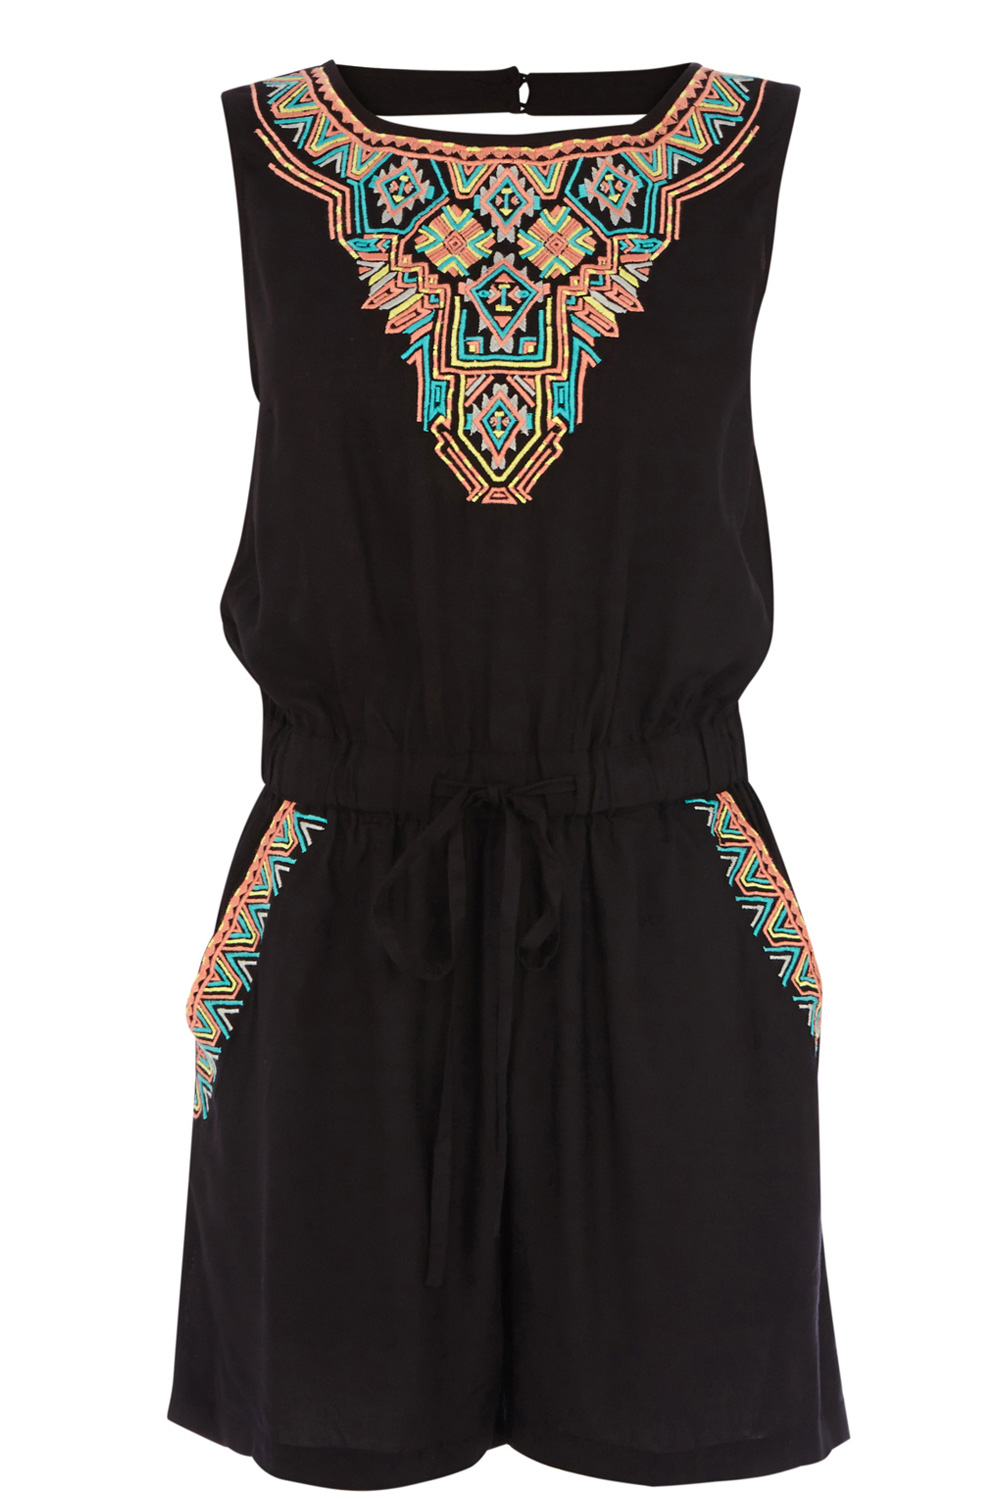 http://www.warehouse.co.uk/fluro-embroidered-playsuit/playsuits-&-jumpsuits/warehouse/fcp-product/4460003077